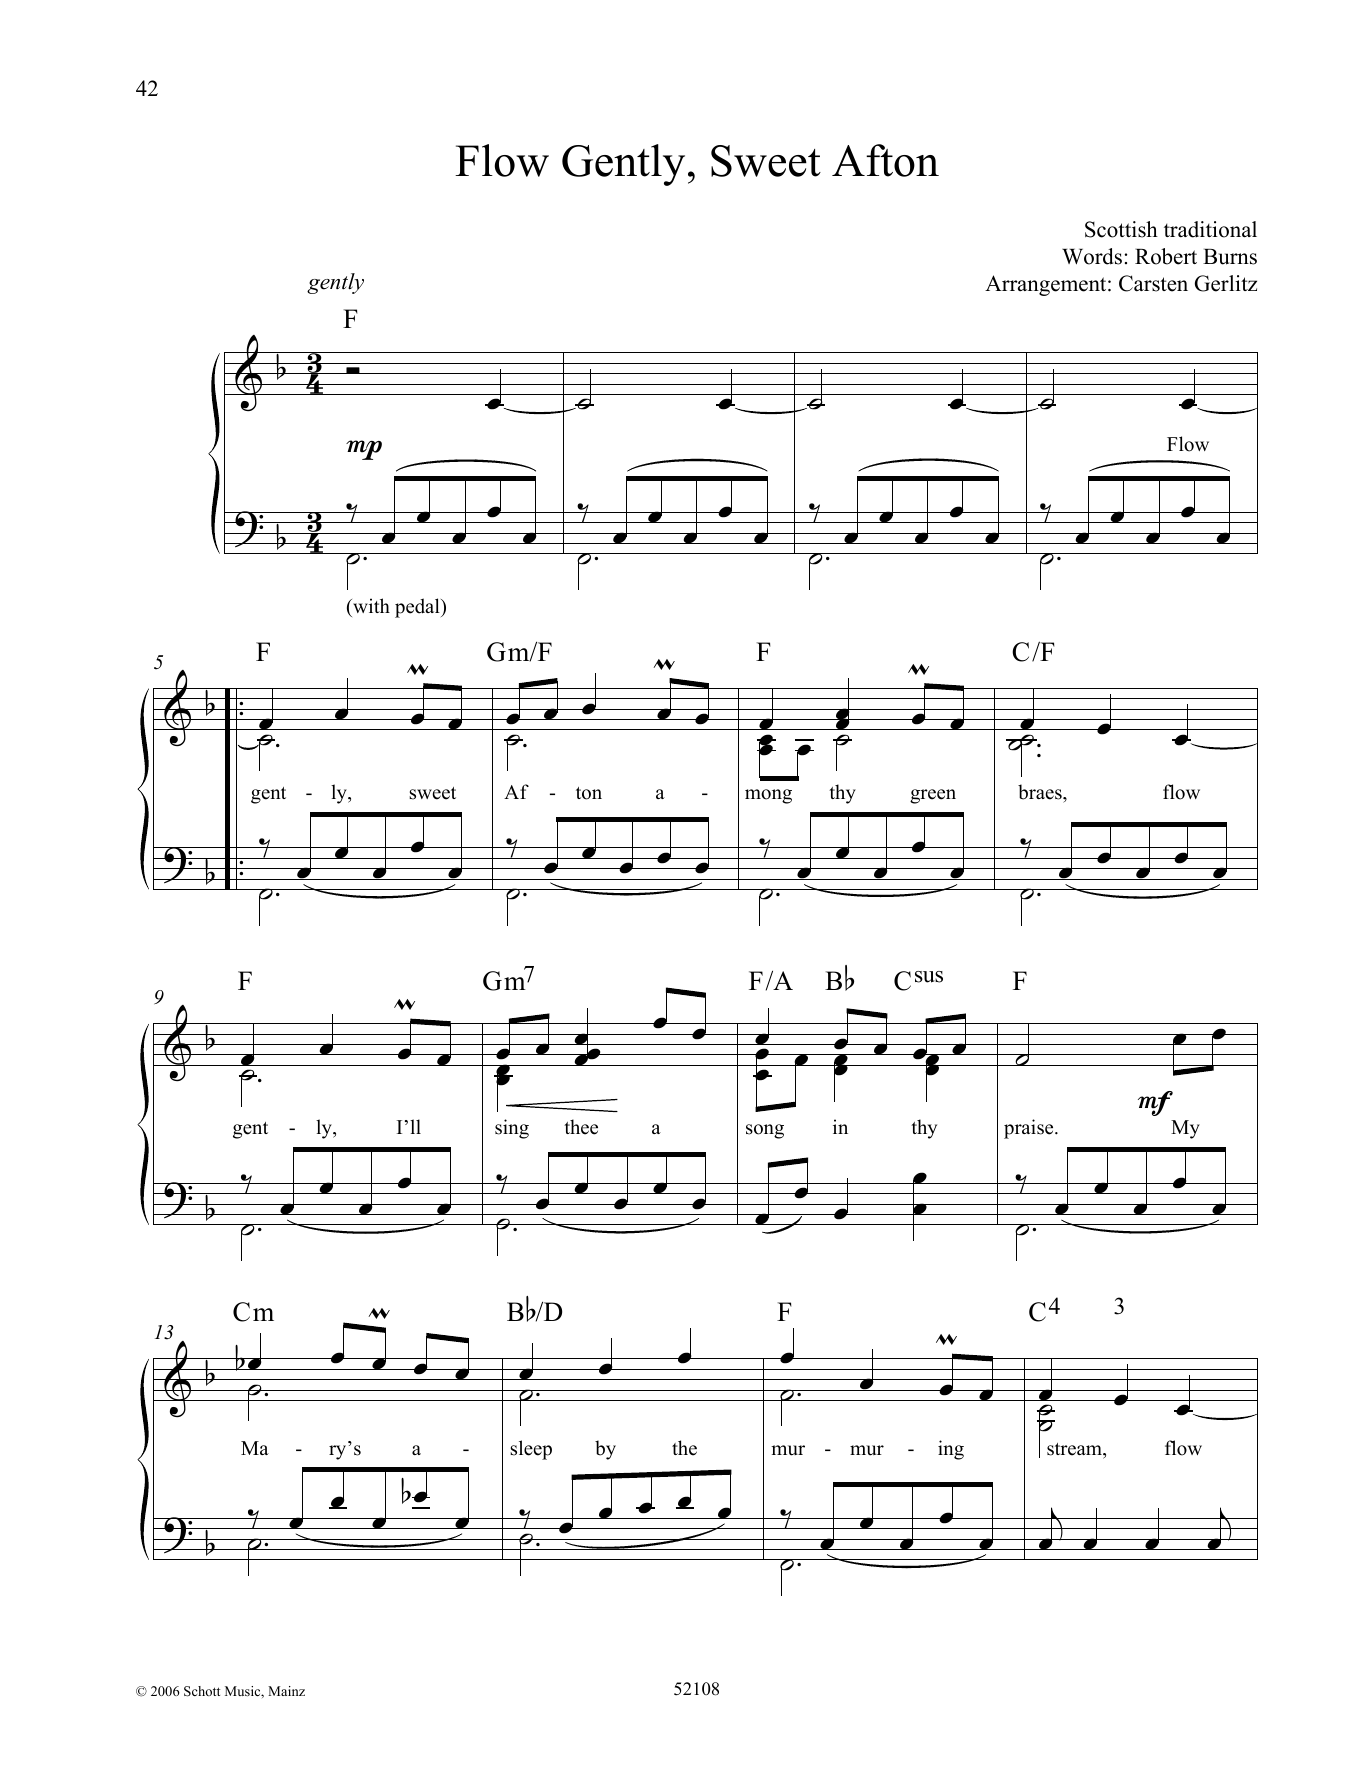 Flow Gently, Sweet Afton Sheet Music